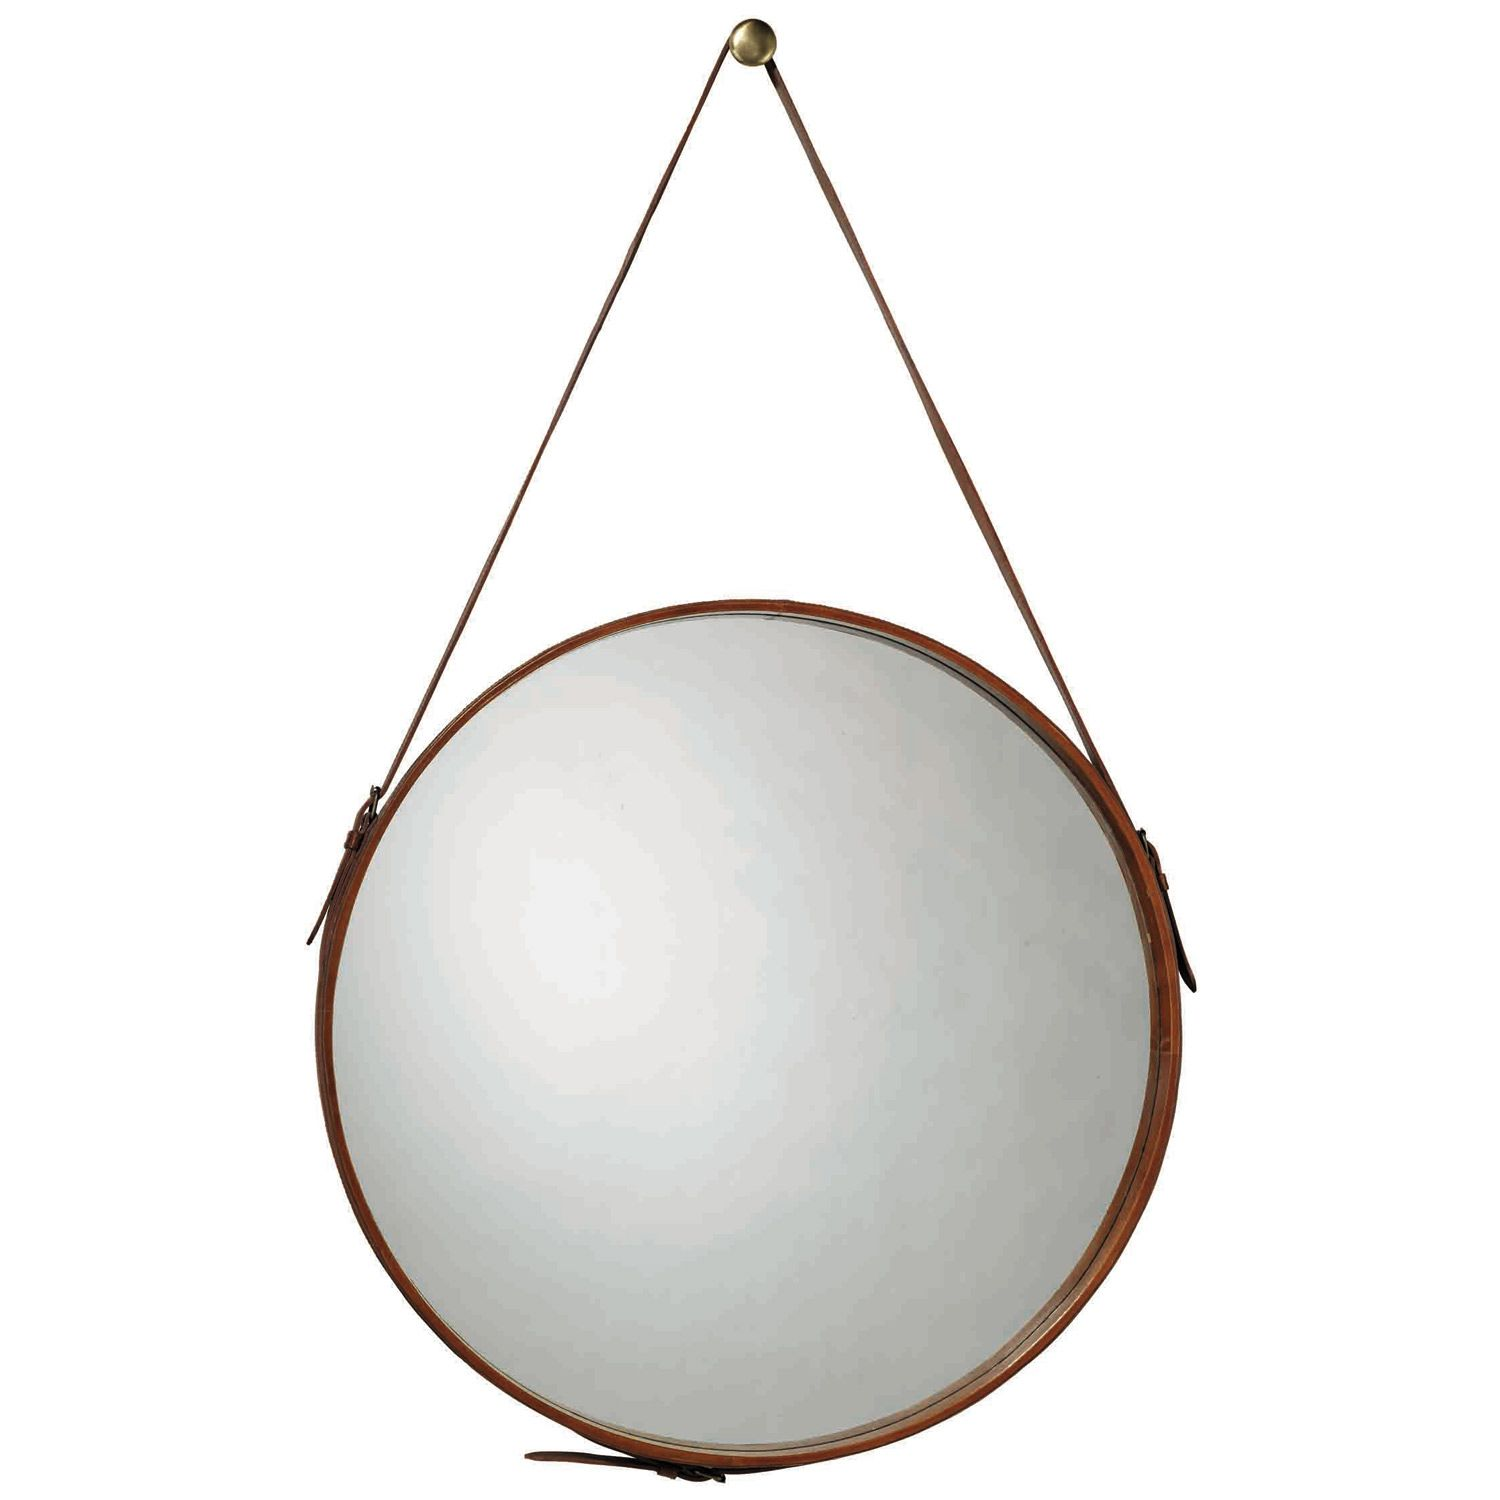 The Large Round Leather Mirror Has A Rustic Vibe In Fresh And Creative Design By Jamie Young Hang One Or Several Varying Heights For Unique